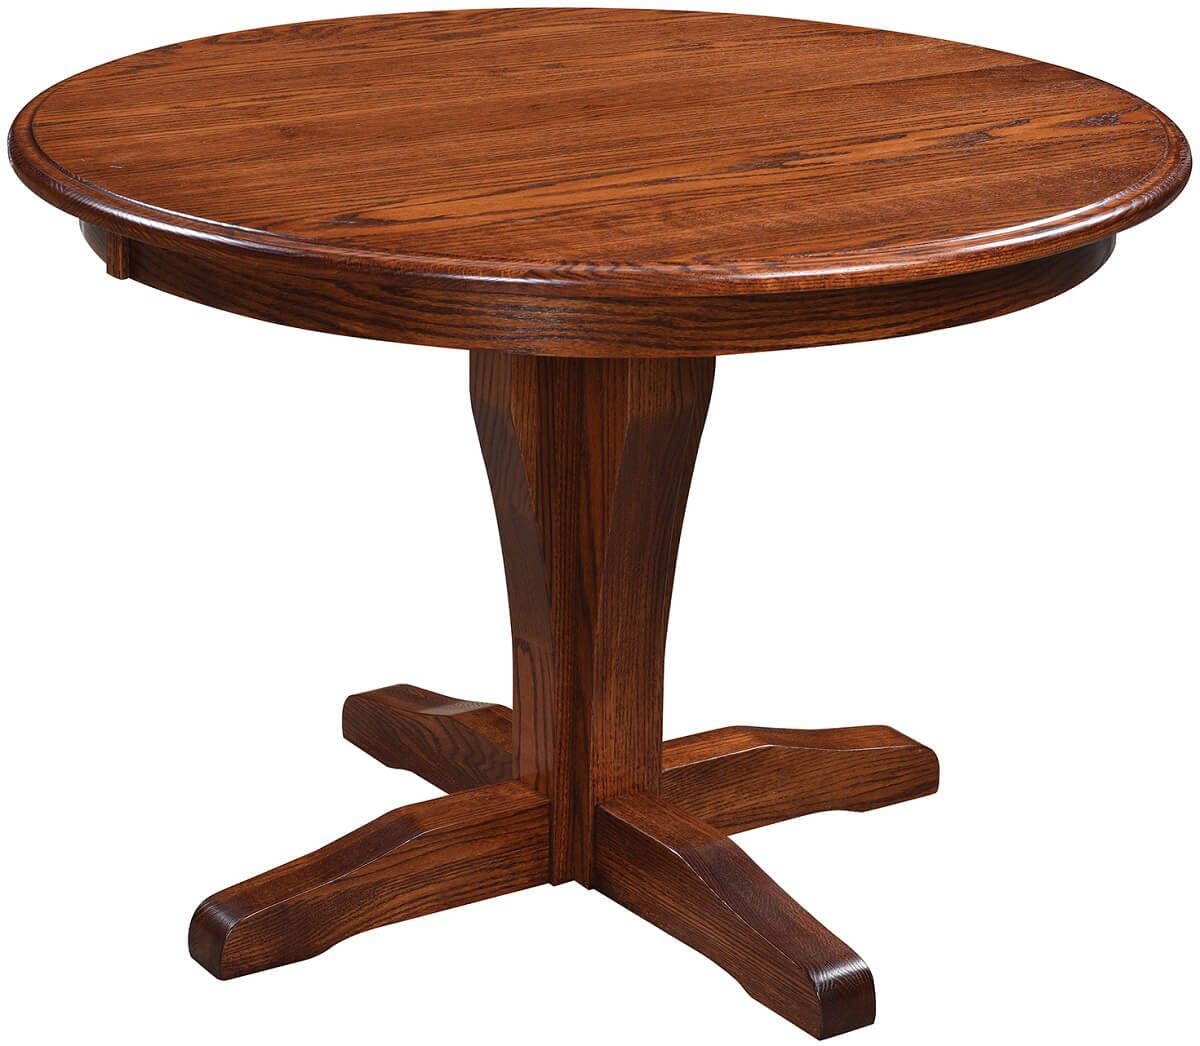 Williston Pedestal Table in Oak